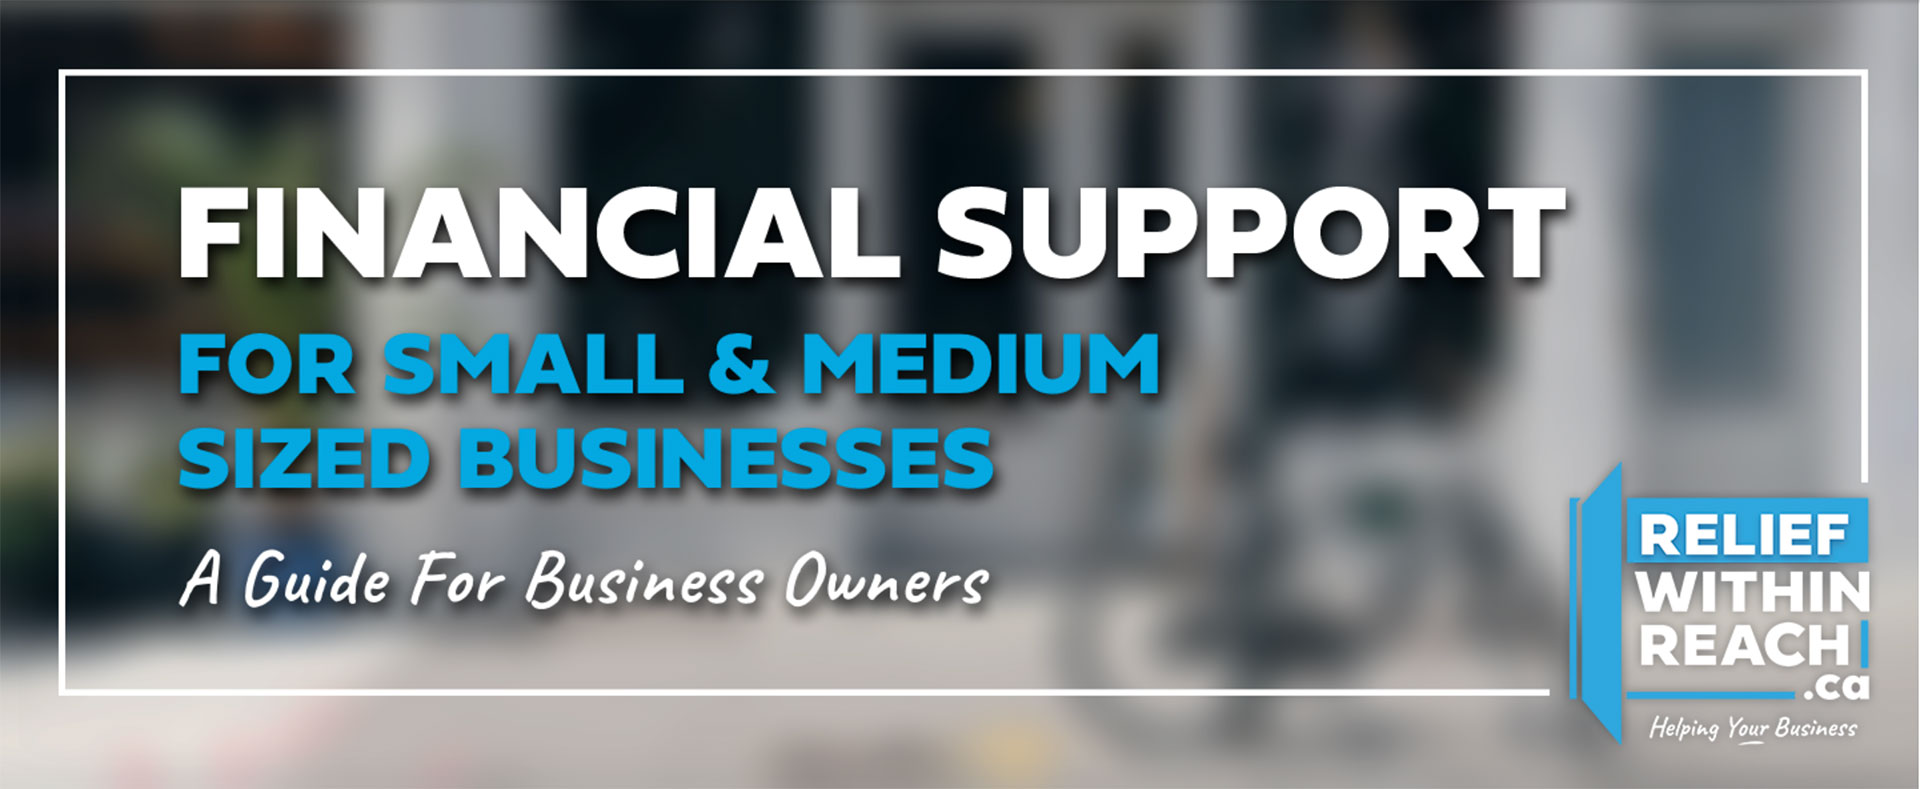 Click for more information on Relief Within Reach for Business!